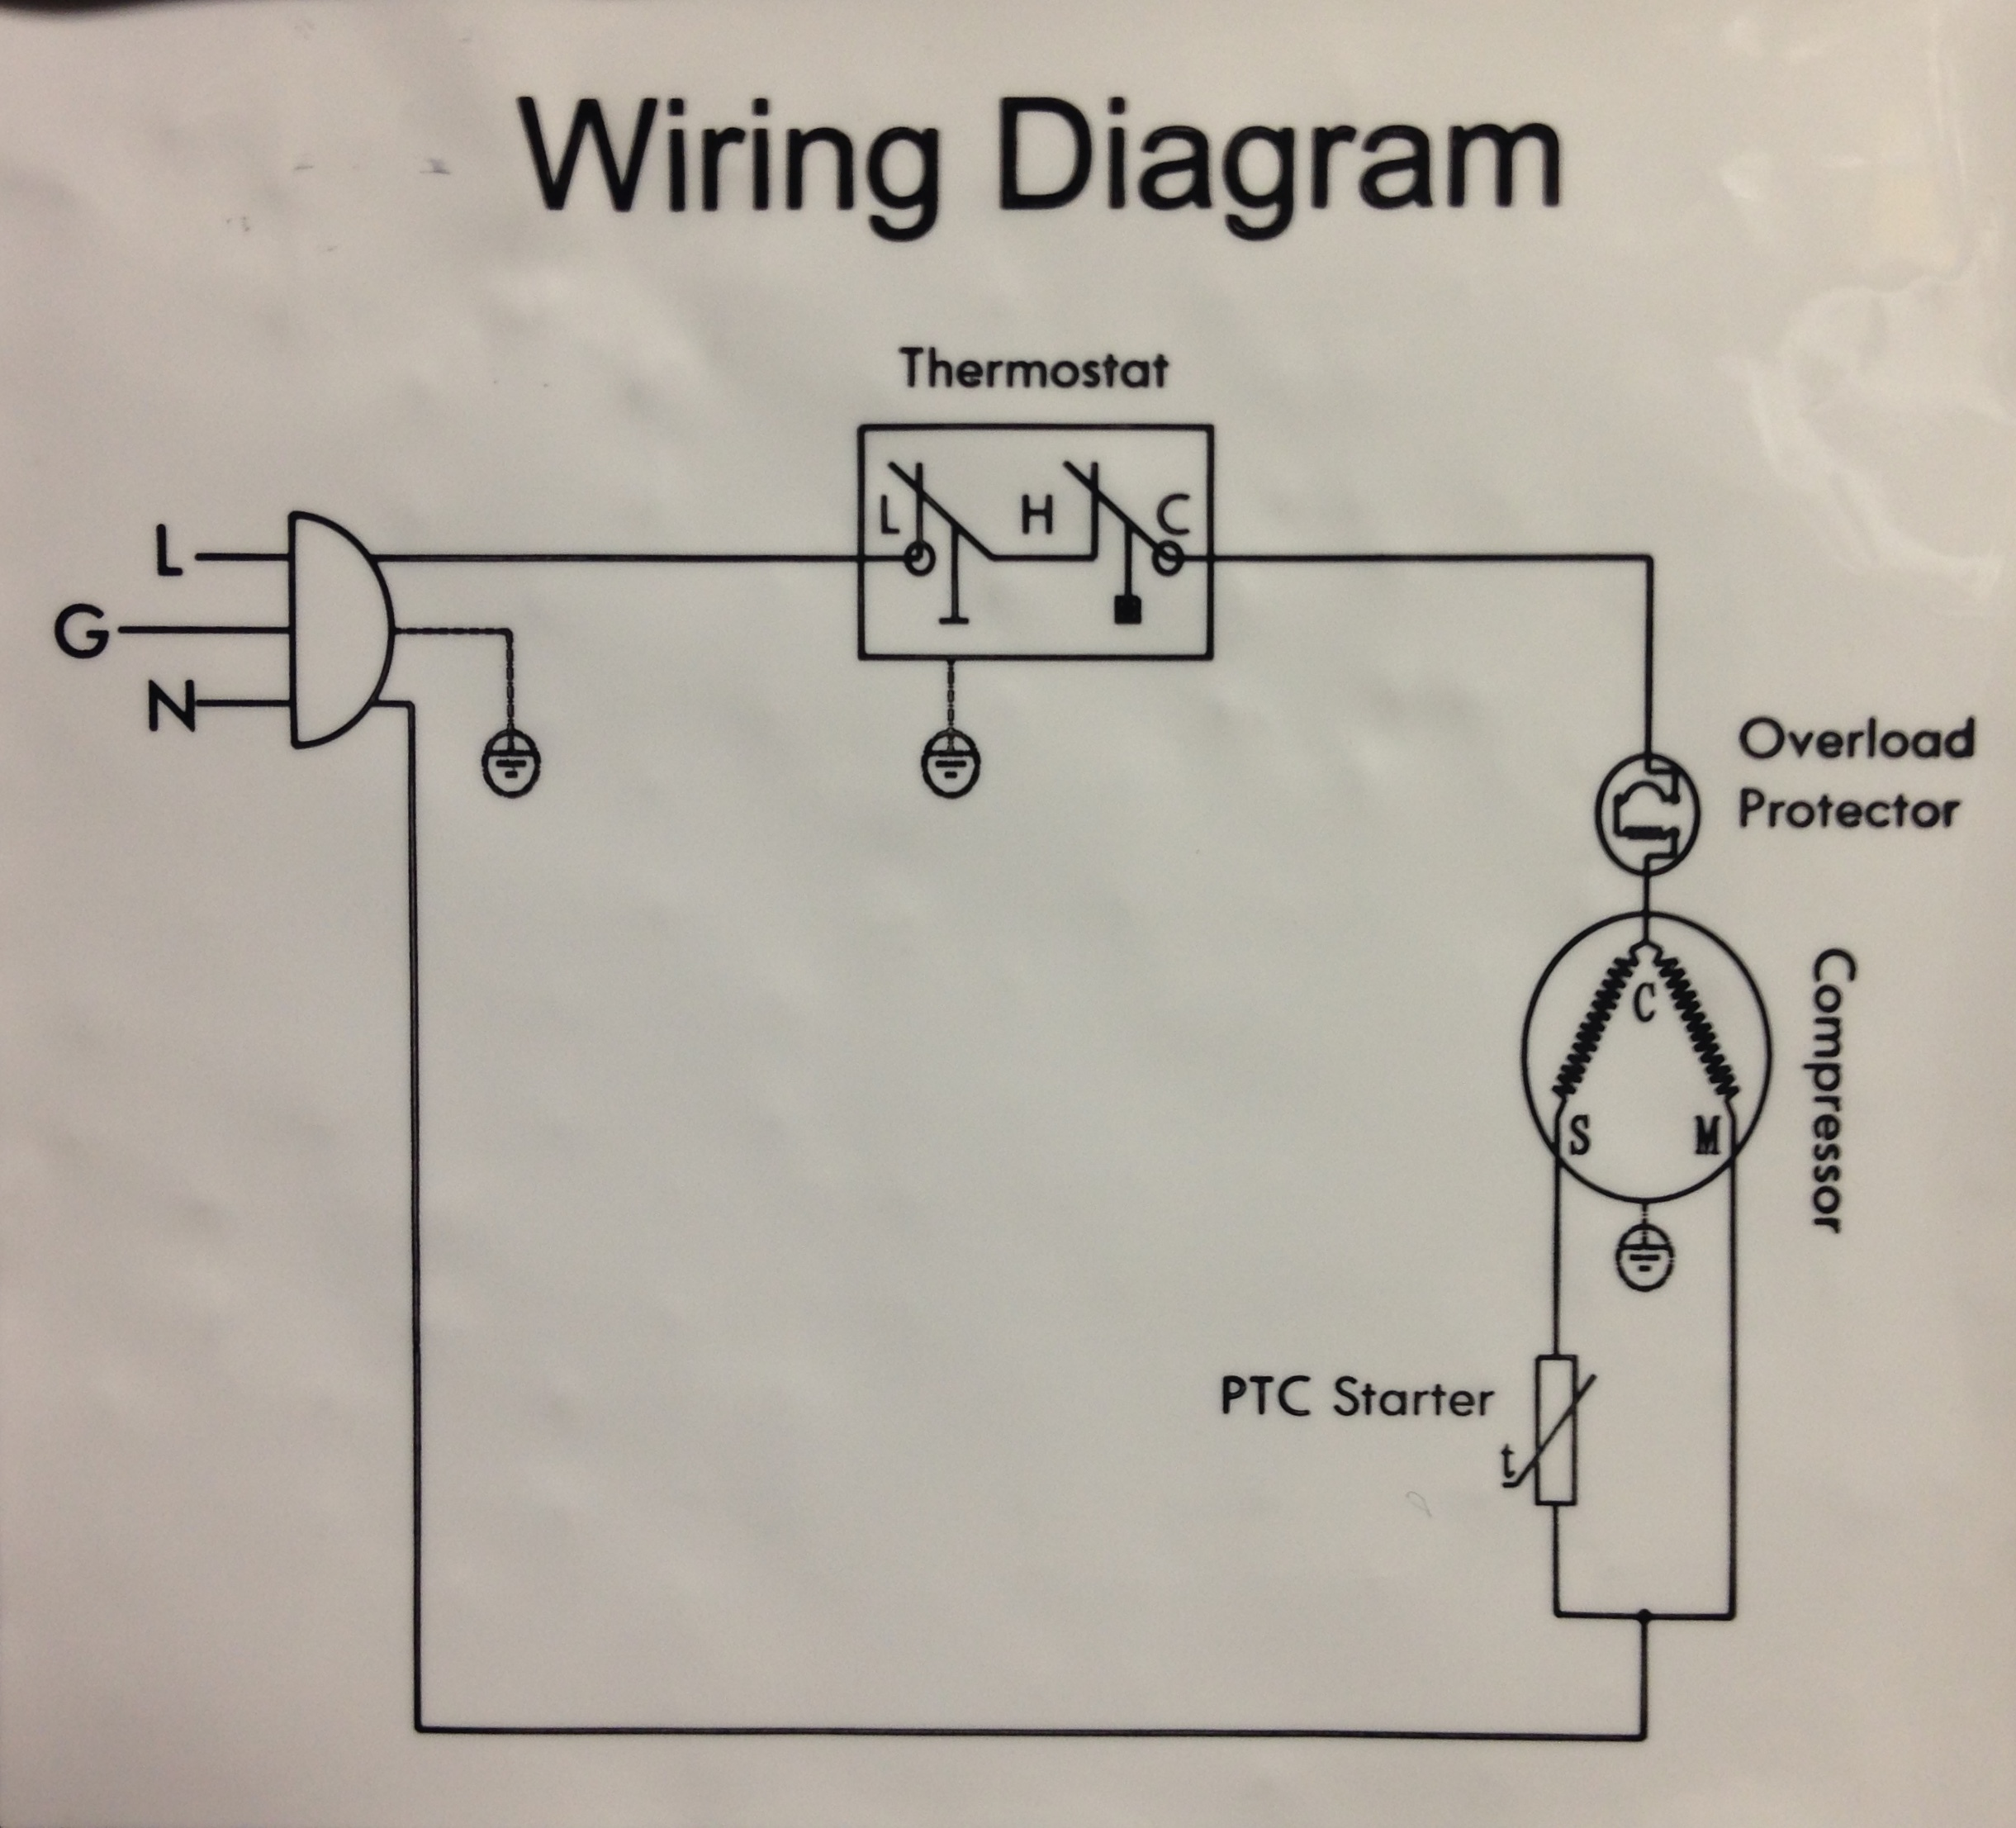 new build electronics newb diagram help fridge build brewpi community